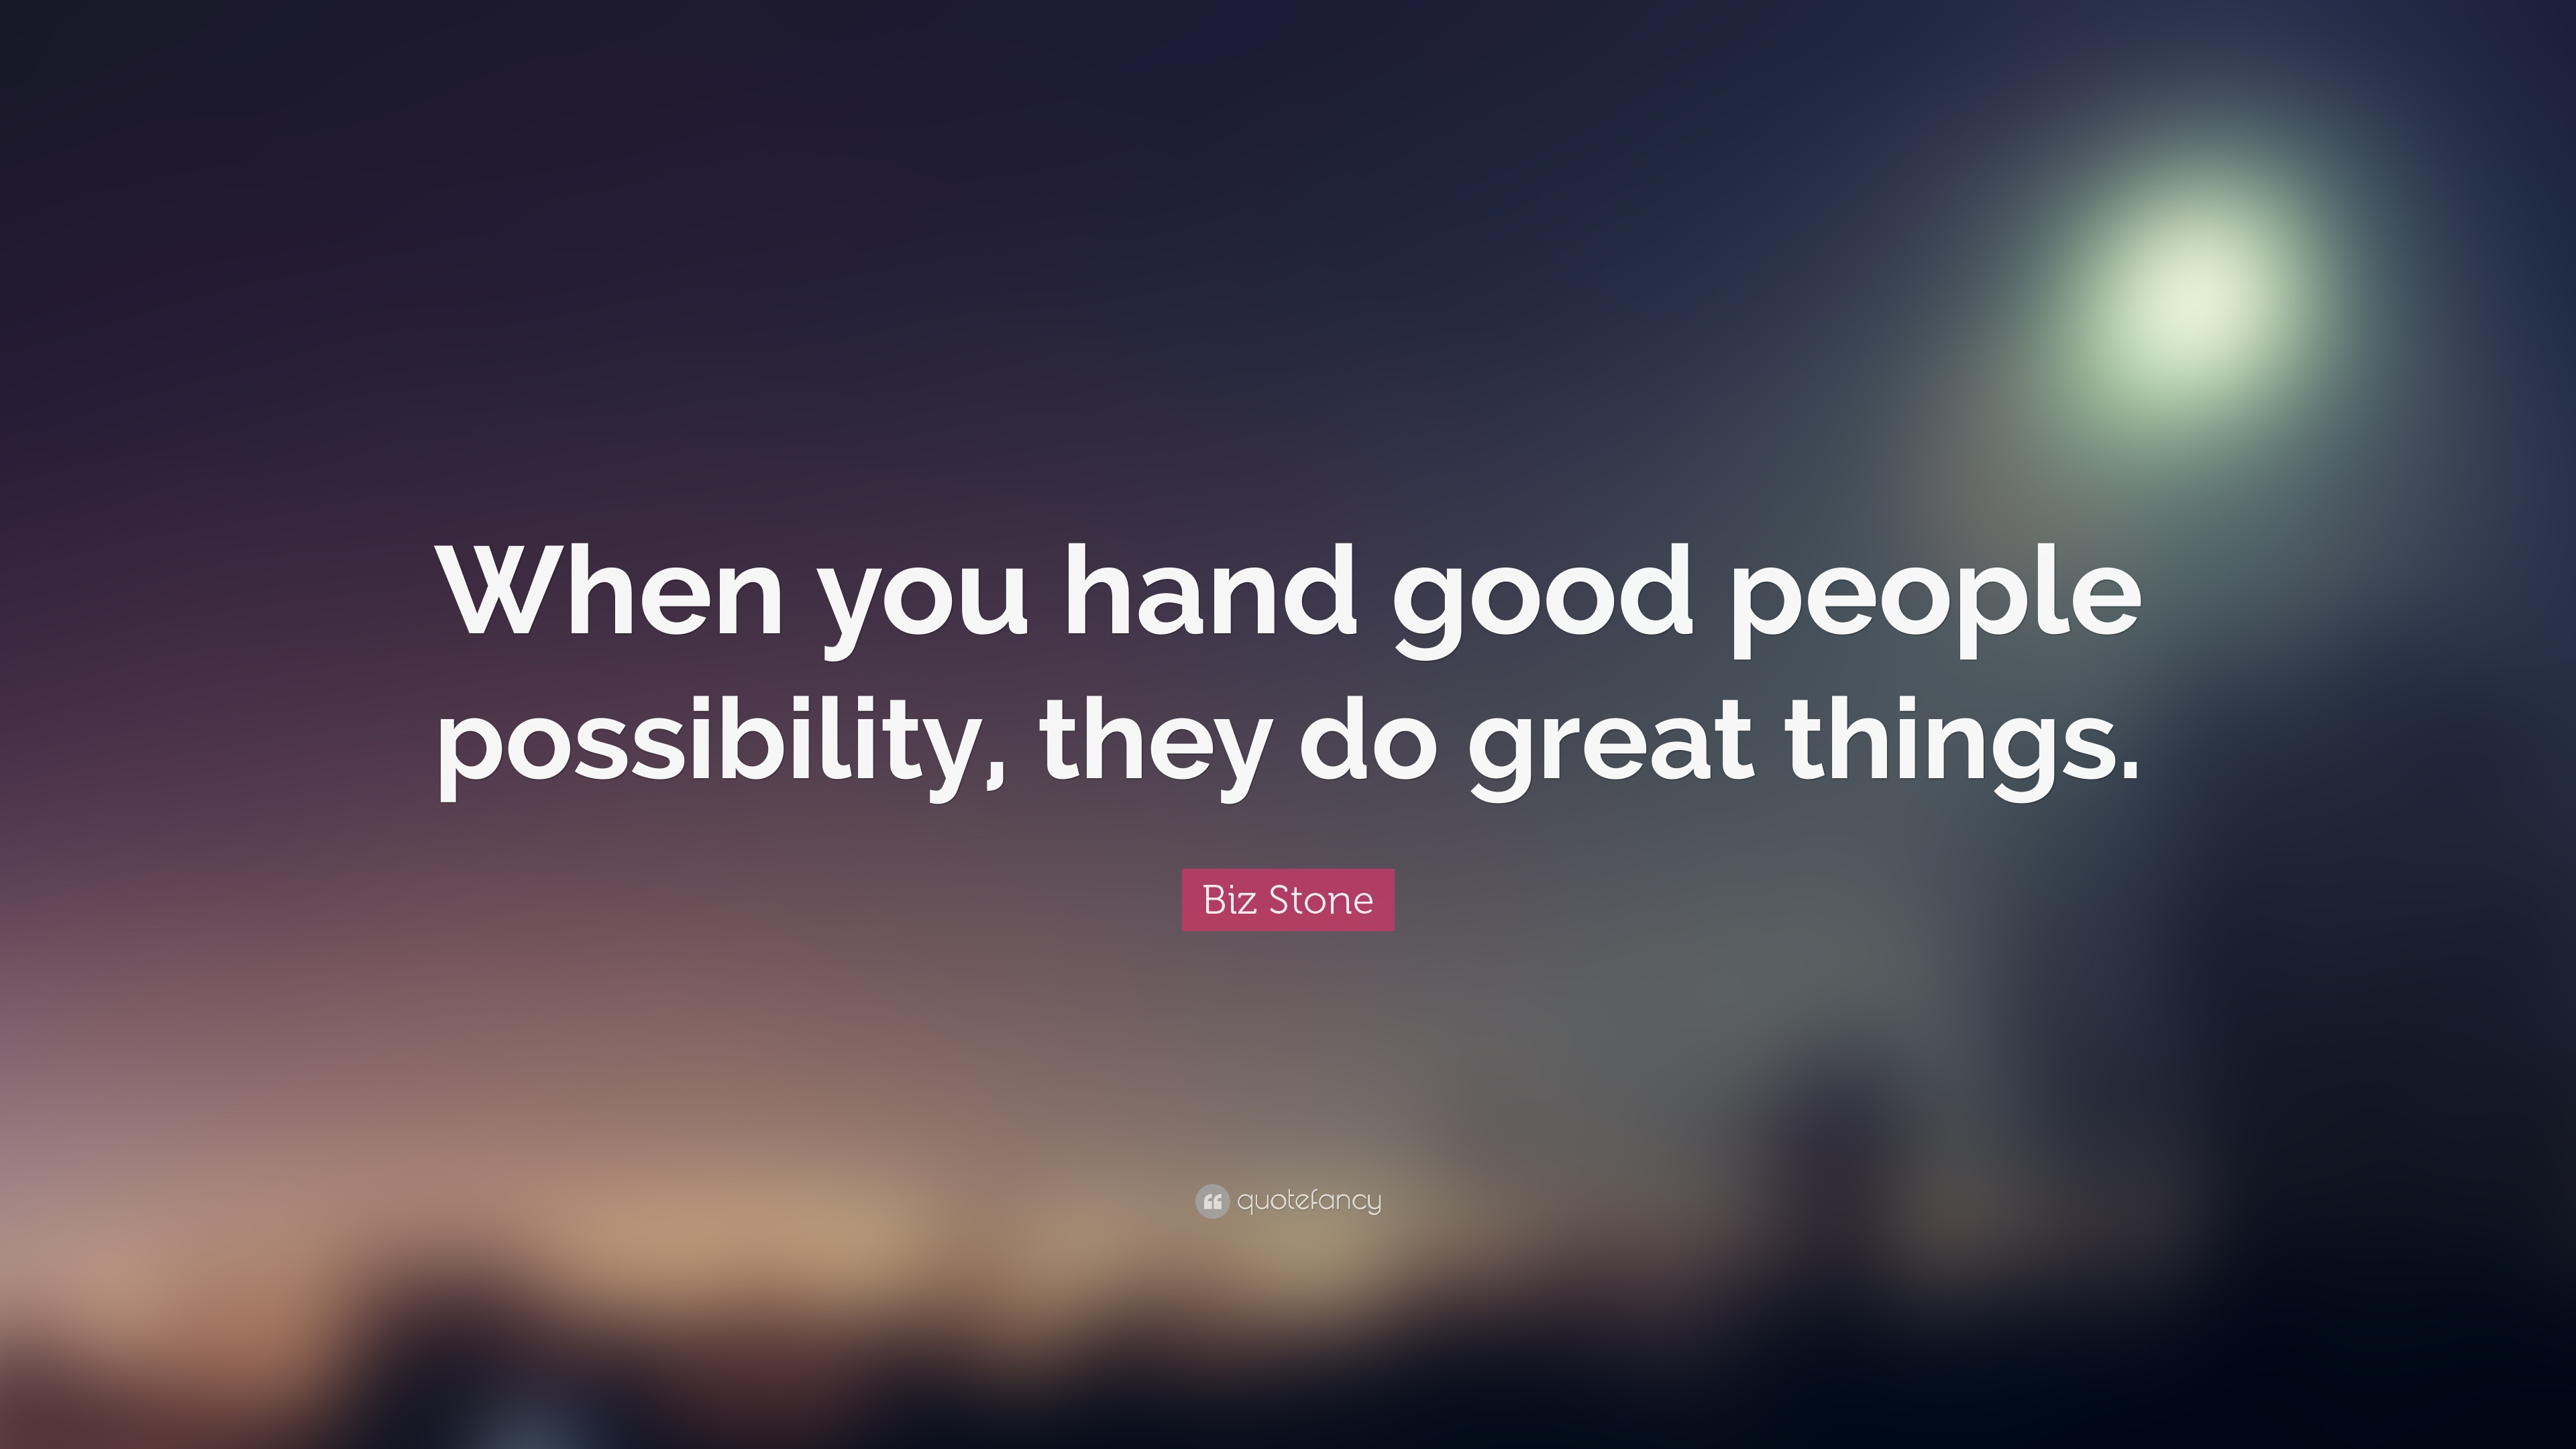 Sleeping Wallpaper Quotes Biz Stone Quote When You Hand Good People Possibility